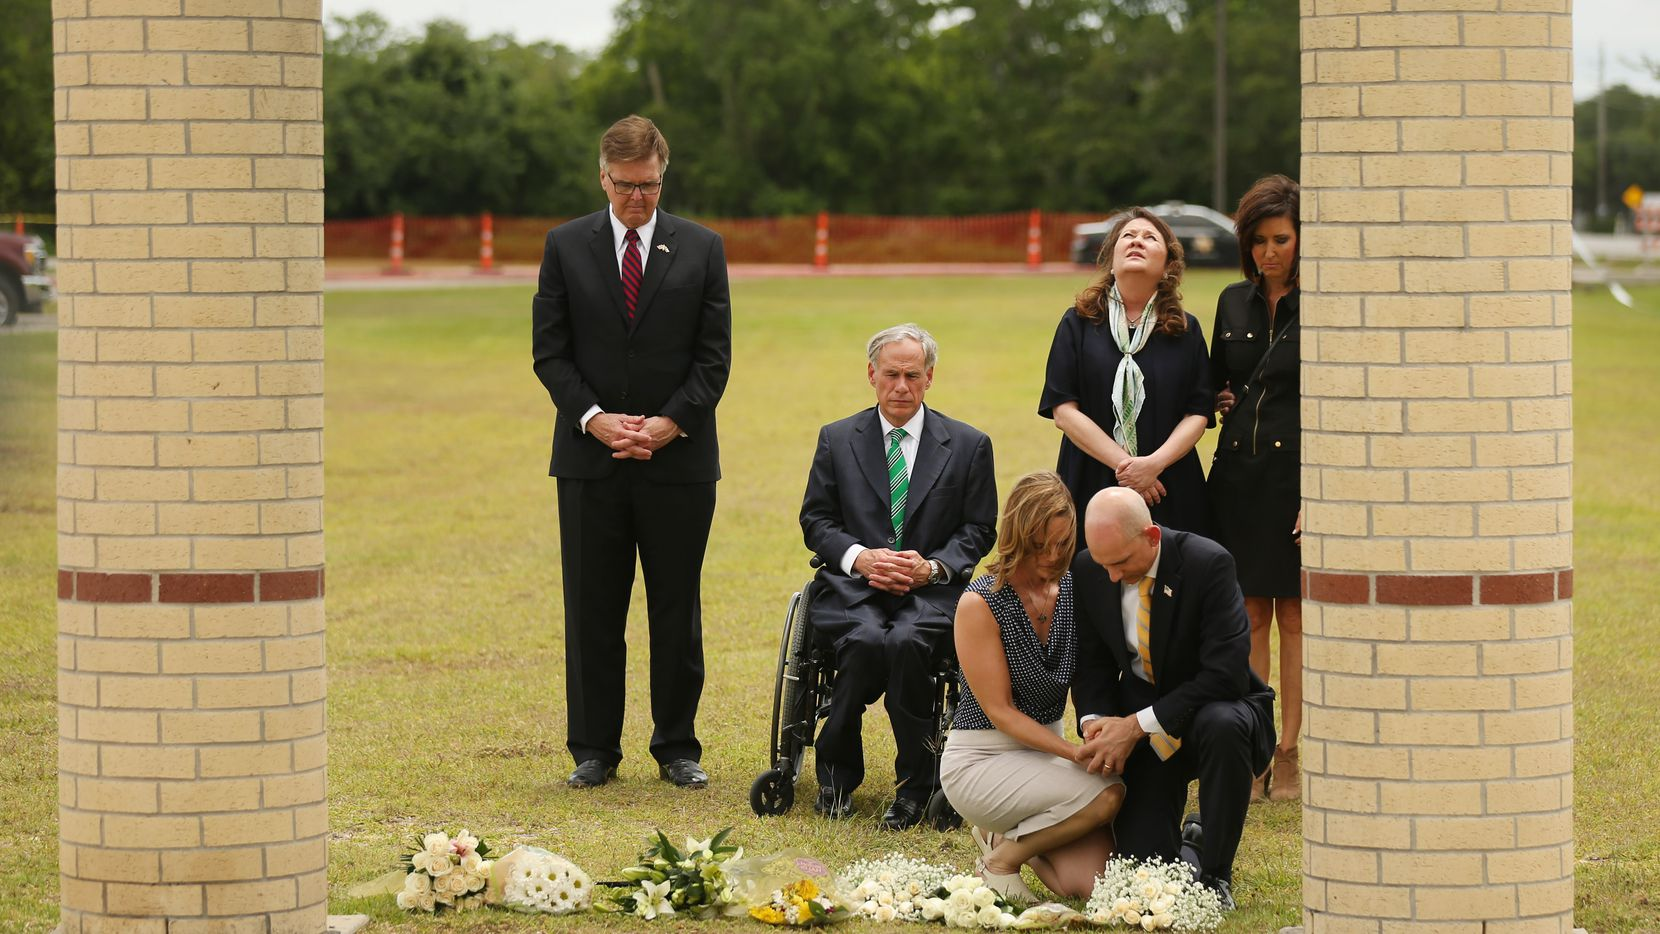 Texas Lt. Gov. Dan Patrick, Gov. Greg Abbott, and Texas first lady Cecilia Abbott pause and reflect after laying flowers at Santa Fe High School in Santa Fe, Texas Sunday May 20, 2018. On Friday morning May 18, 10 people were killed and 13 were injured after a shooting at Santa Fe High School.